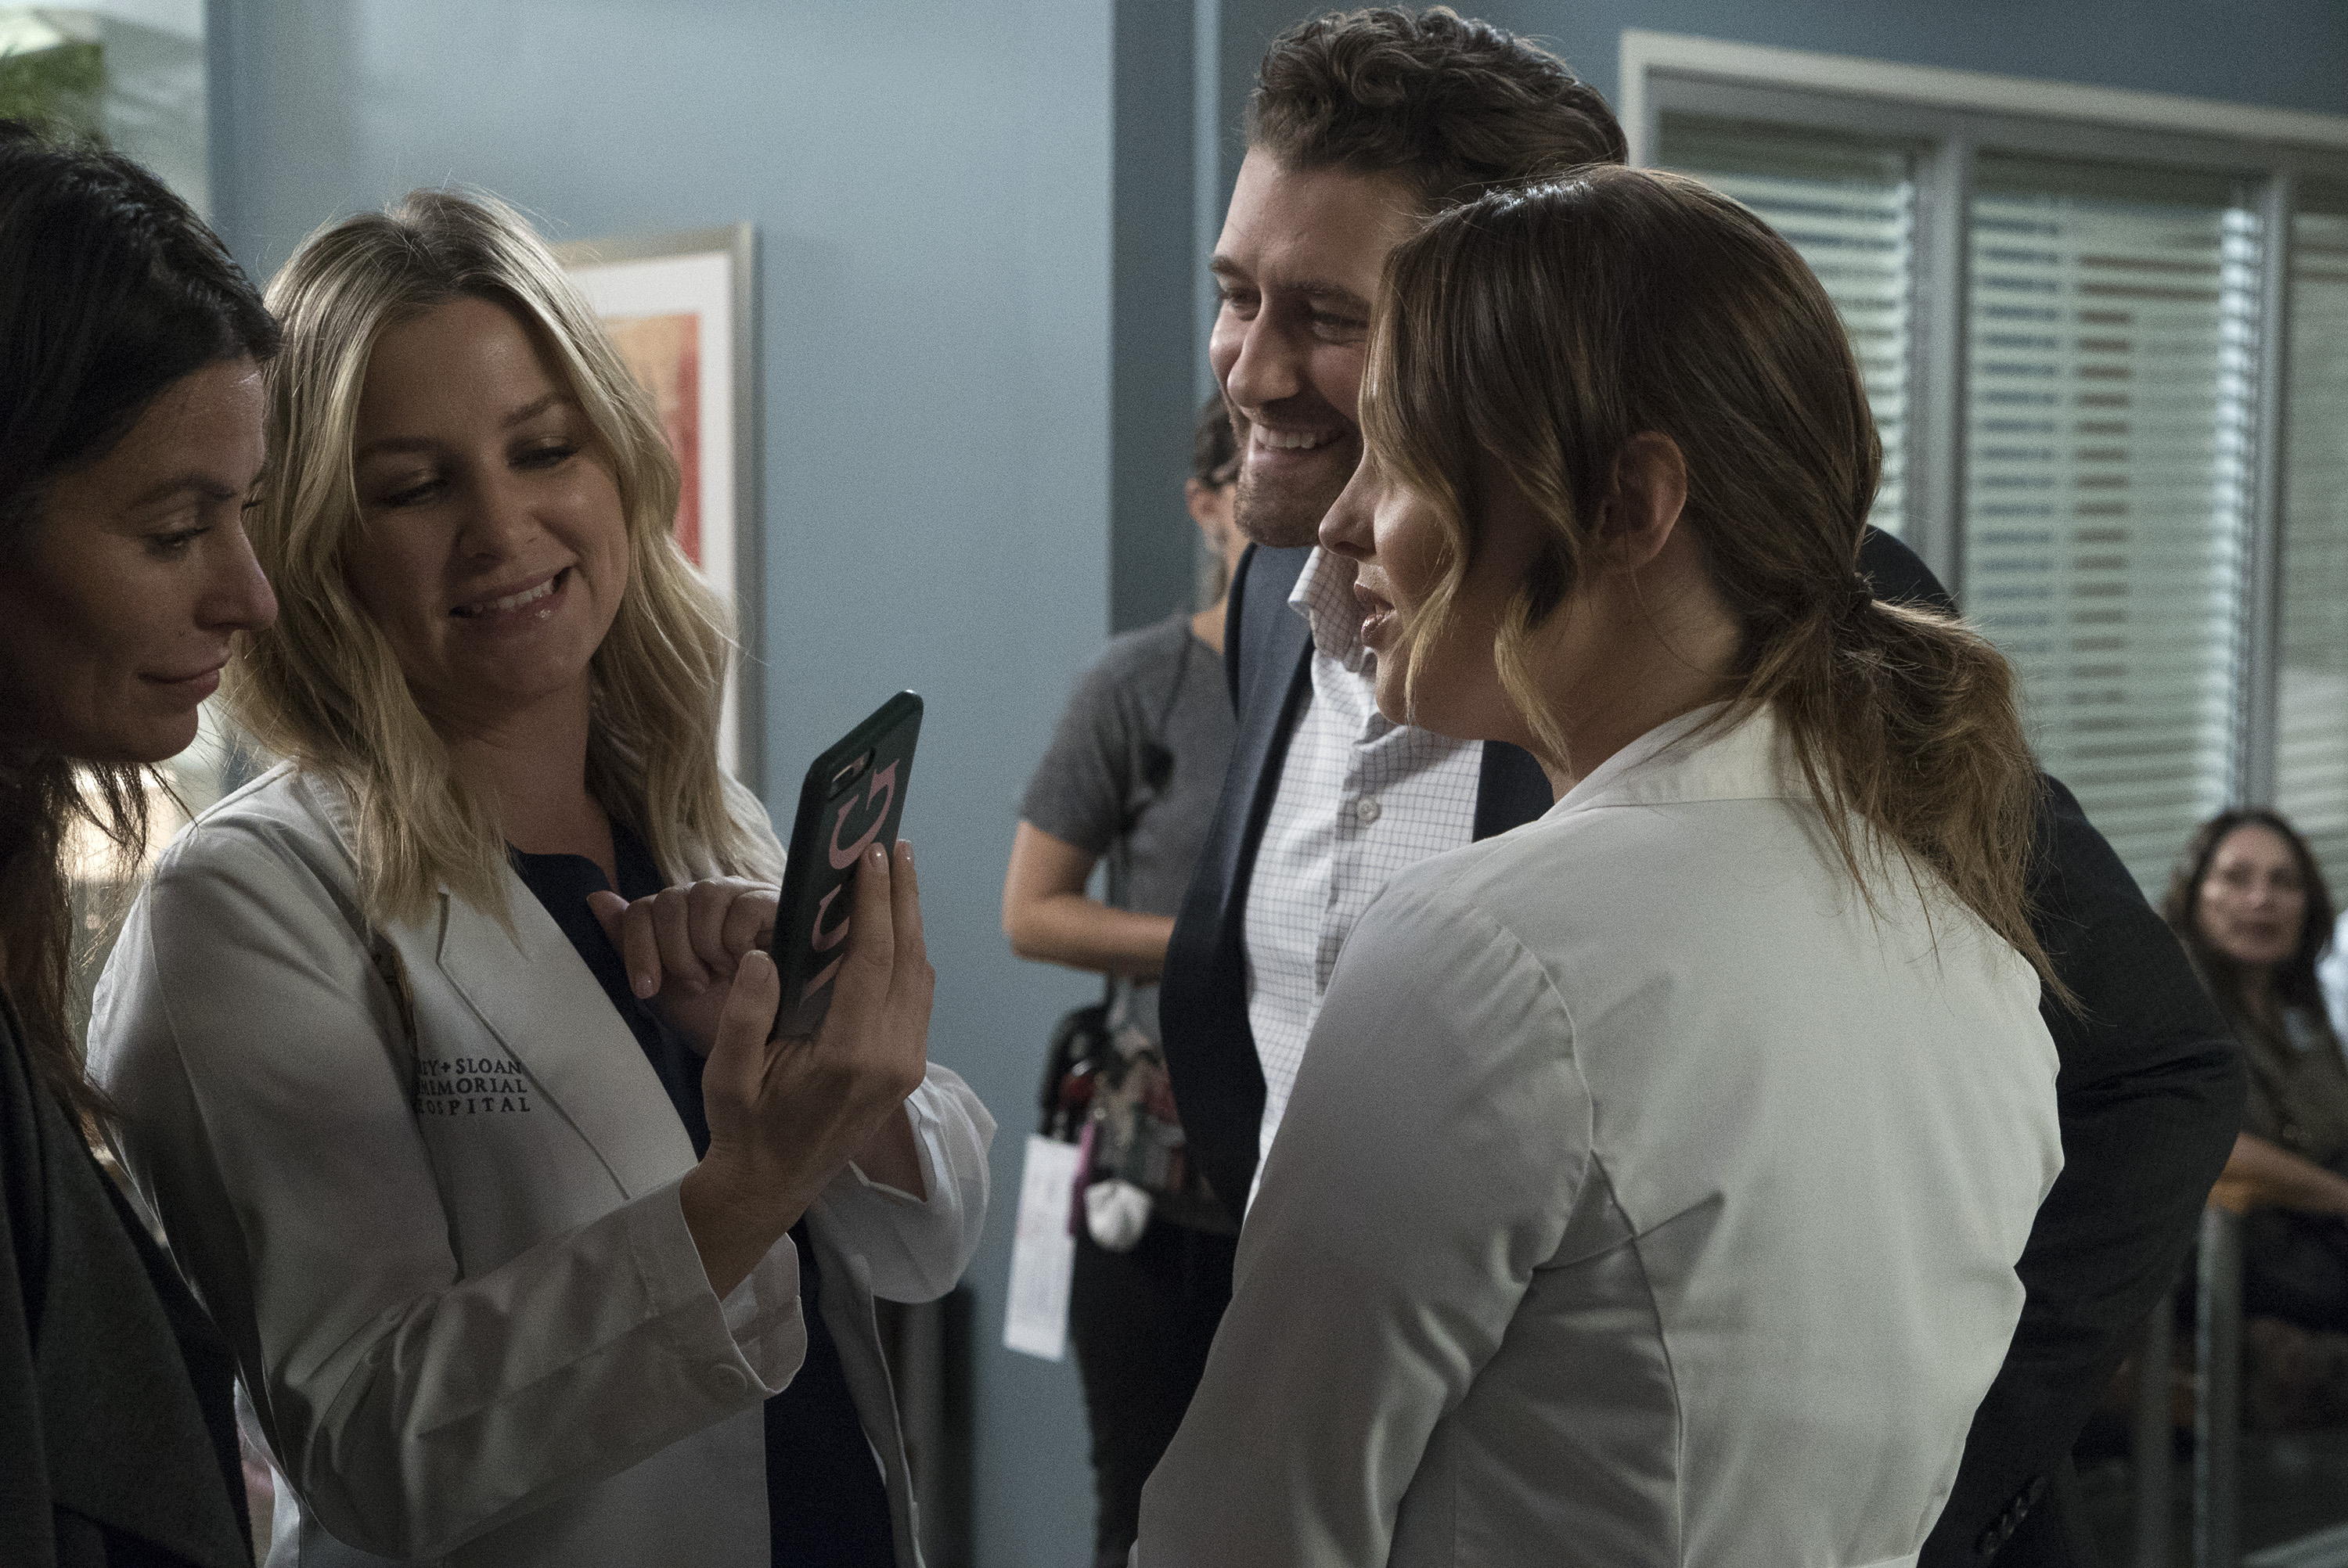 """GREY'S ANATOMY - """"Four Seasons in One Day"""" - Jo finally faces her estranged, abusive husband Paul Stadler, while Grey Sloan continues to work with the FBI after a hacker has compromised the hospital's computer system, on the midseason return of """"Grey's Anatomy,"""" THURSDAY, JAN. 18 (8:00-9:00 p.m. EST), on The ABC Television Network. (ABC/Richard Cartwright)BETHANY JOY LENZ, JESSICA CAPSHAW, MATTHEW MORRISON, CAMILLA LUDDINGTON"""